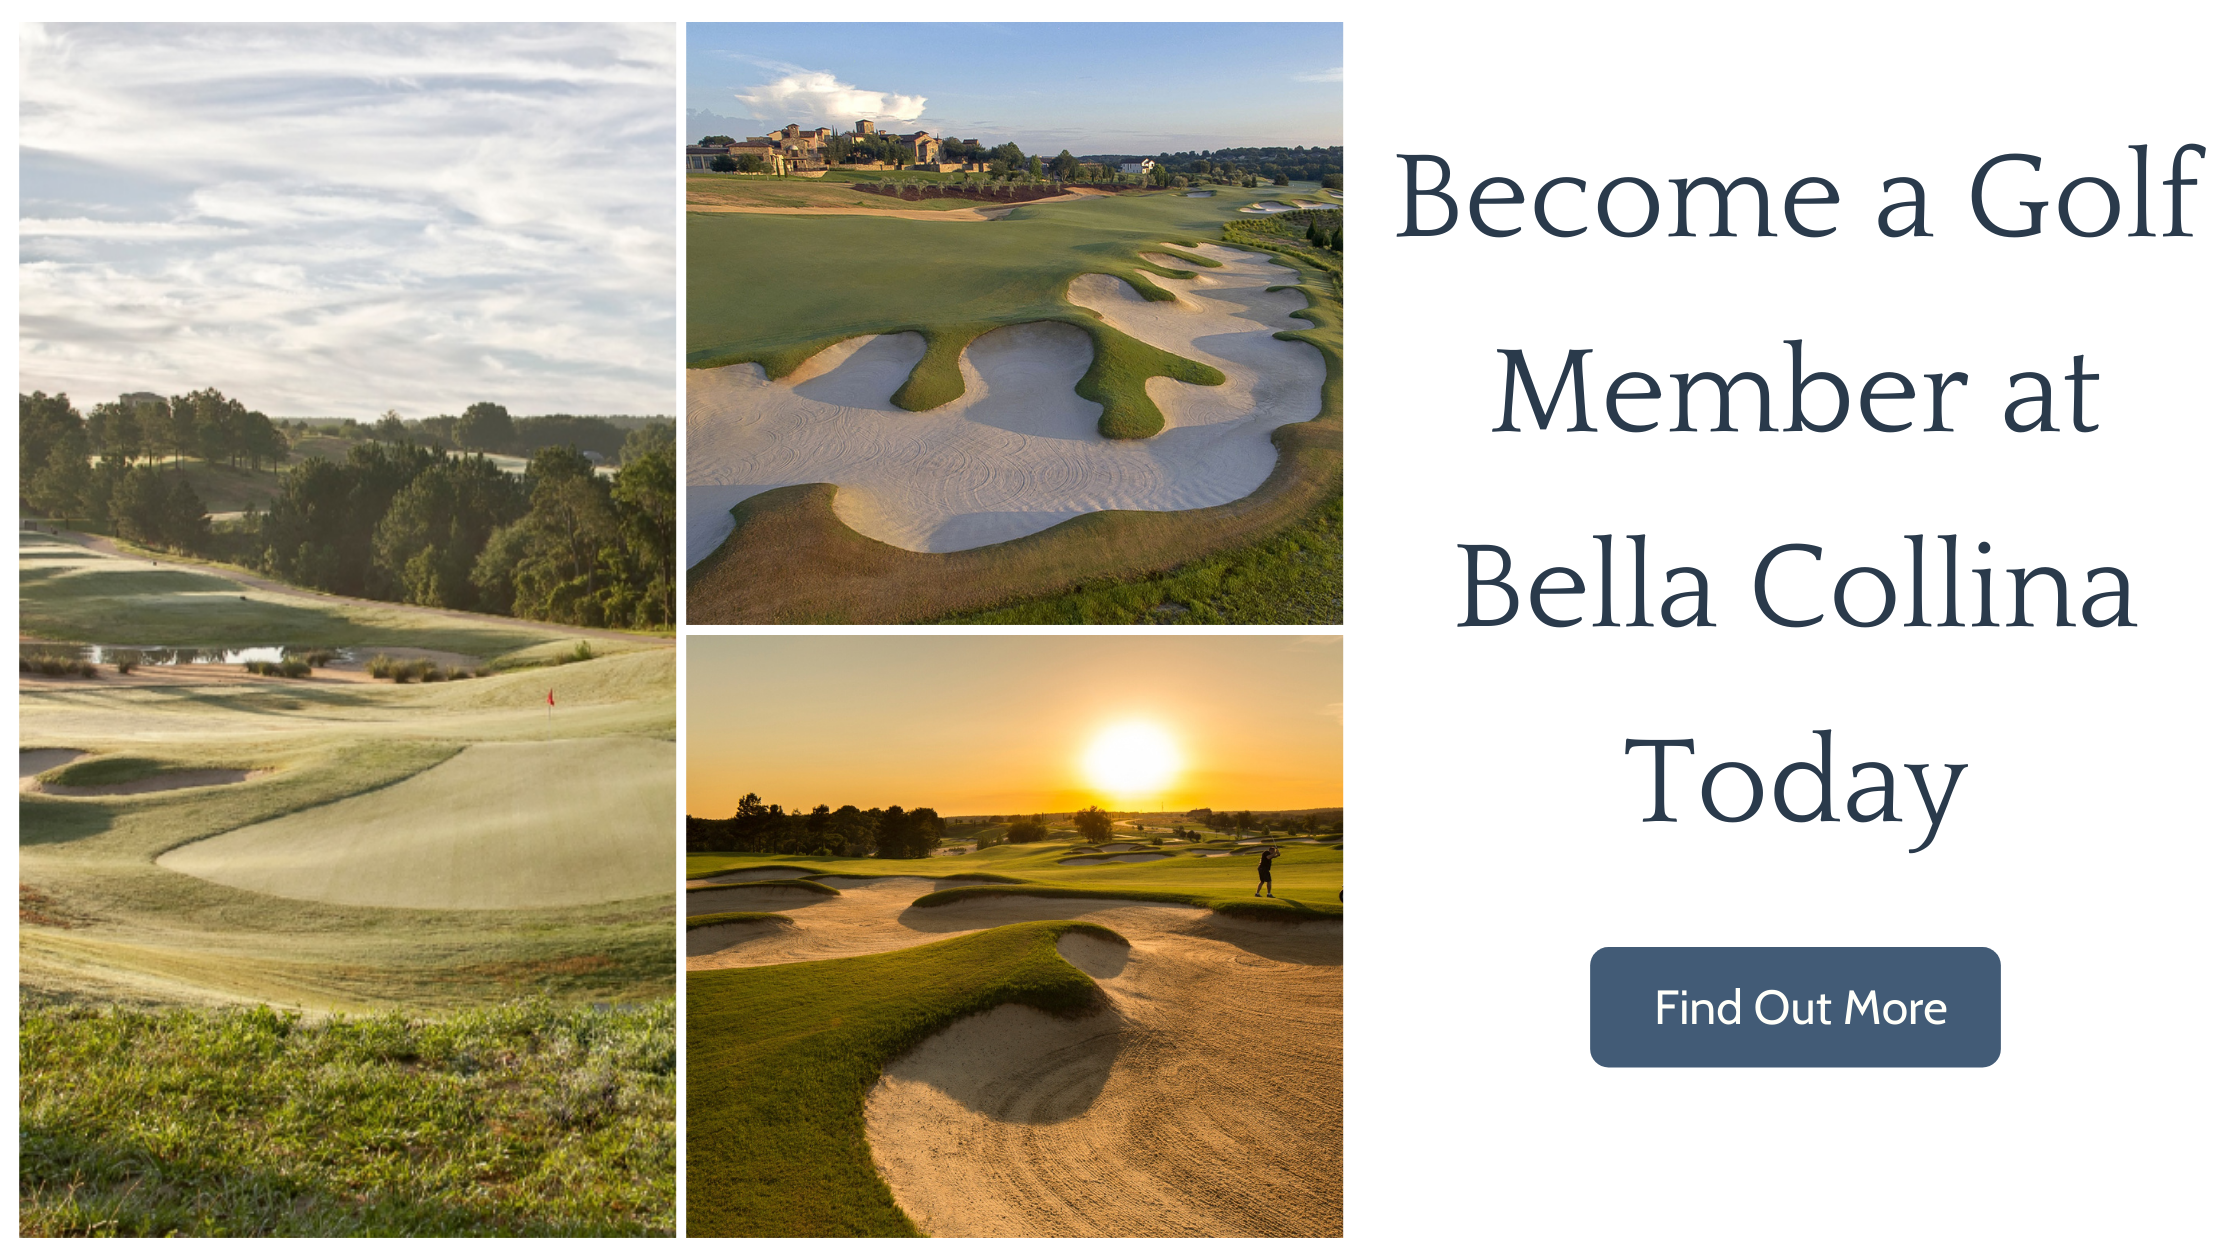 Become a Golf Member at Bella Collina Today - Find Out More